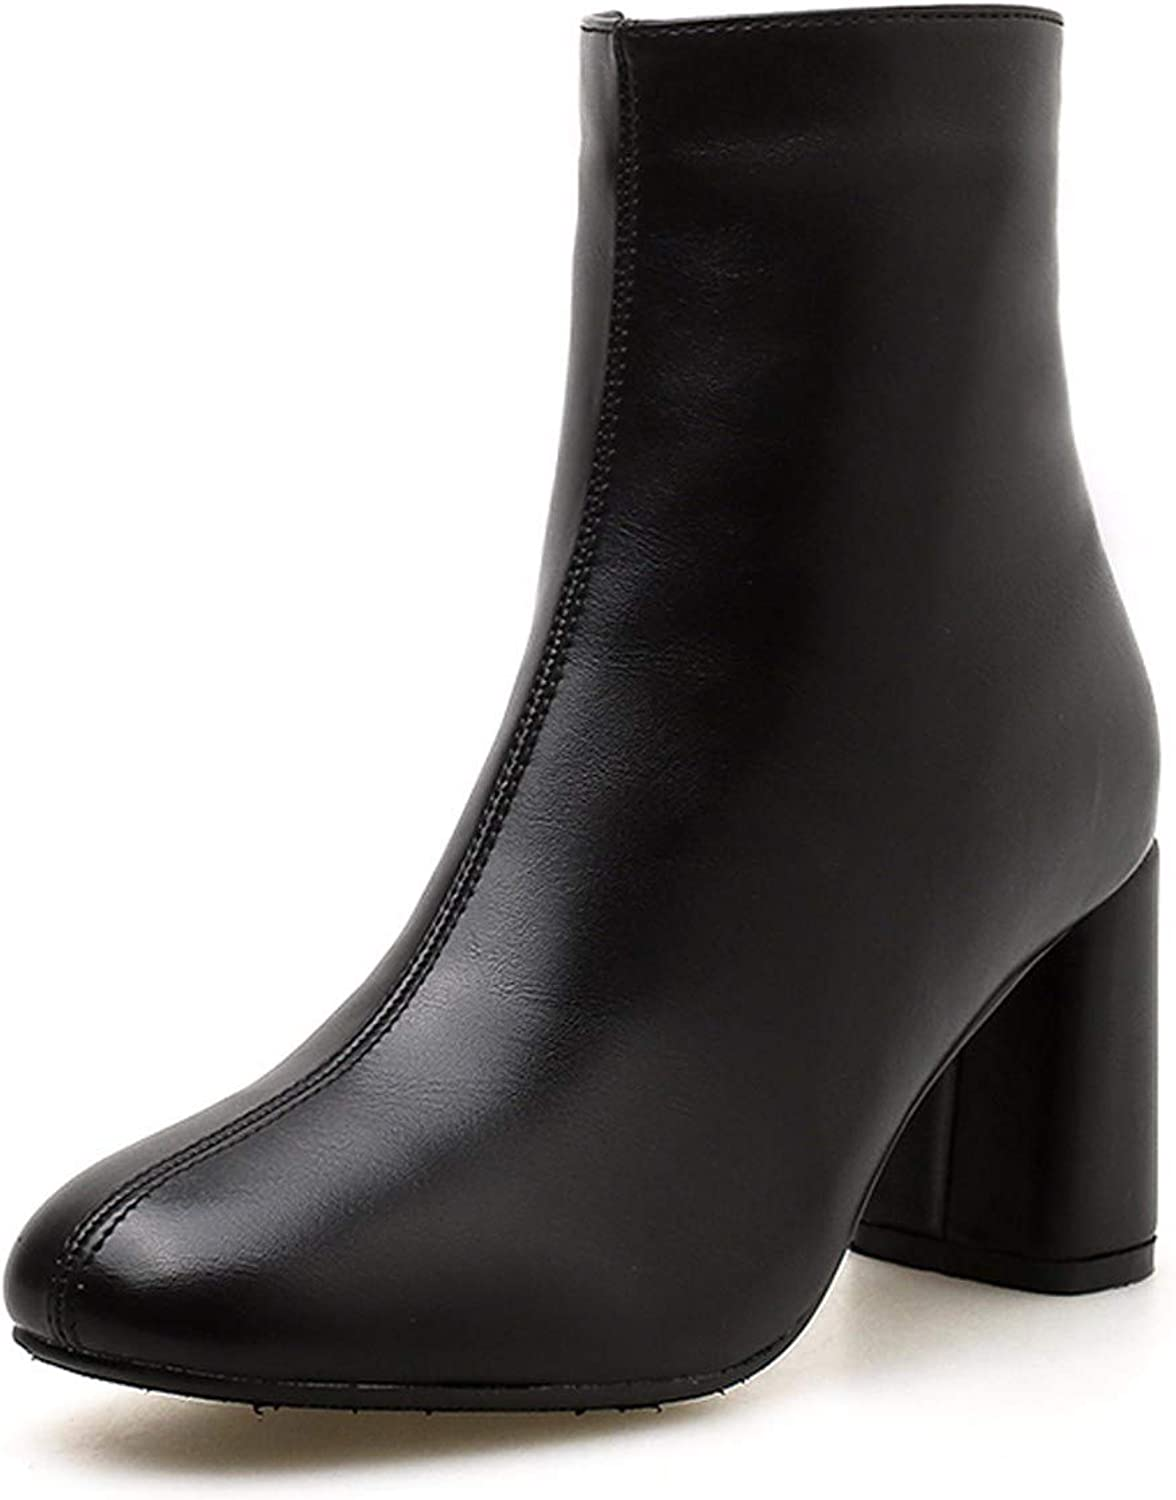 SFSYDDY Popular shoes Short Boots with High 7Cm Thick Heel Martin Boots Velvet Wild Boots Chelsea Boots.